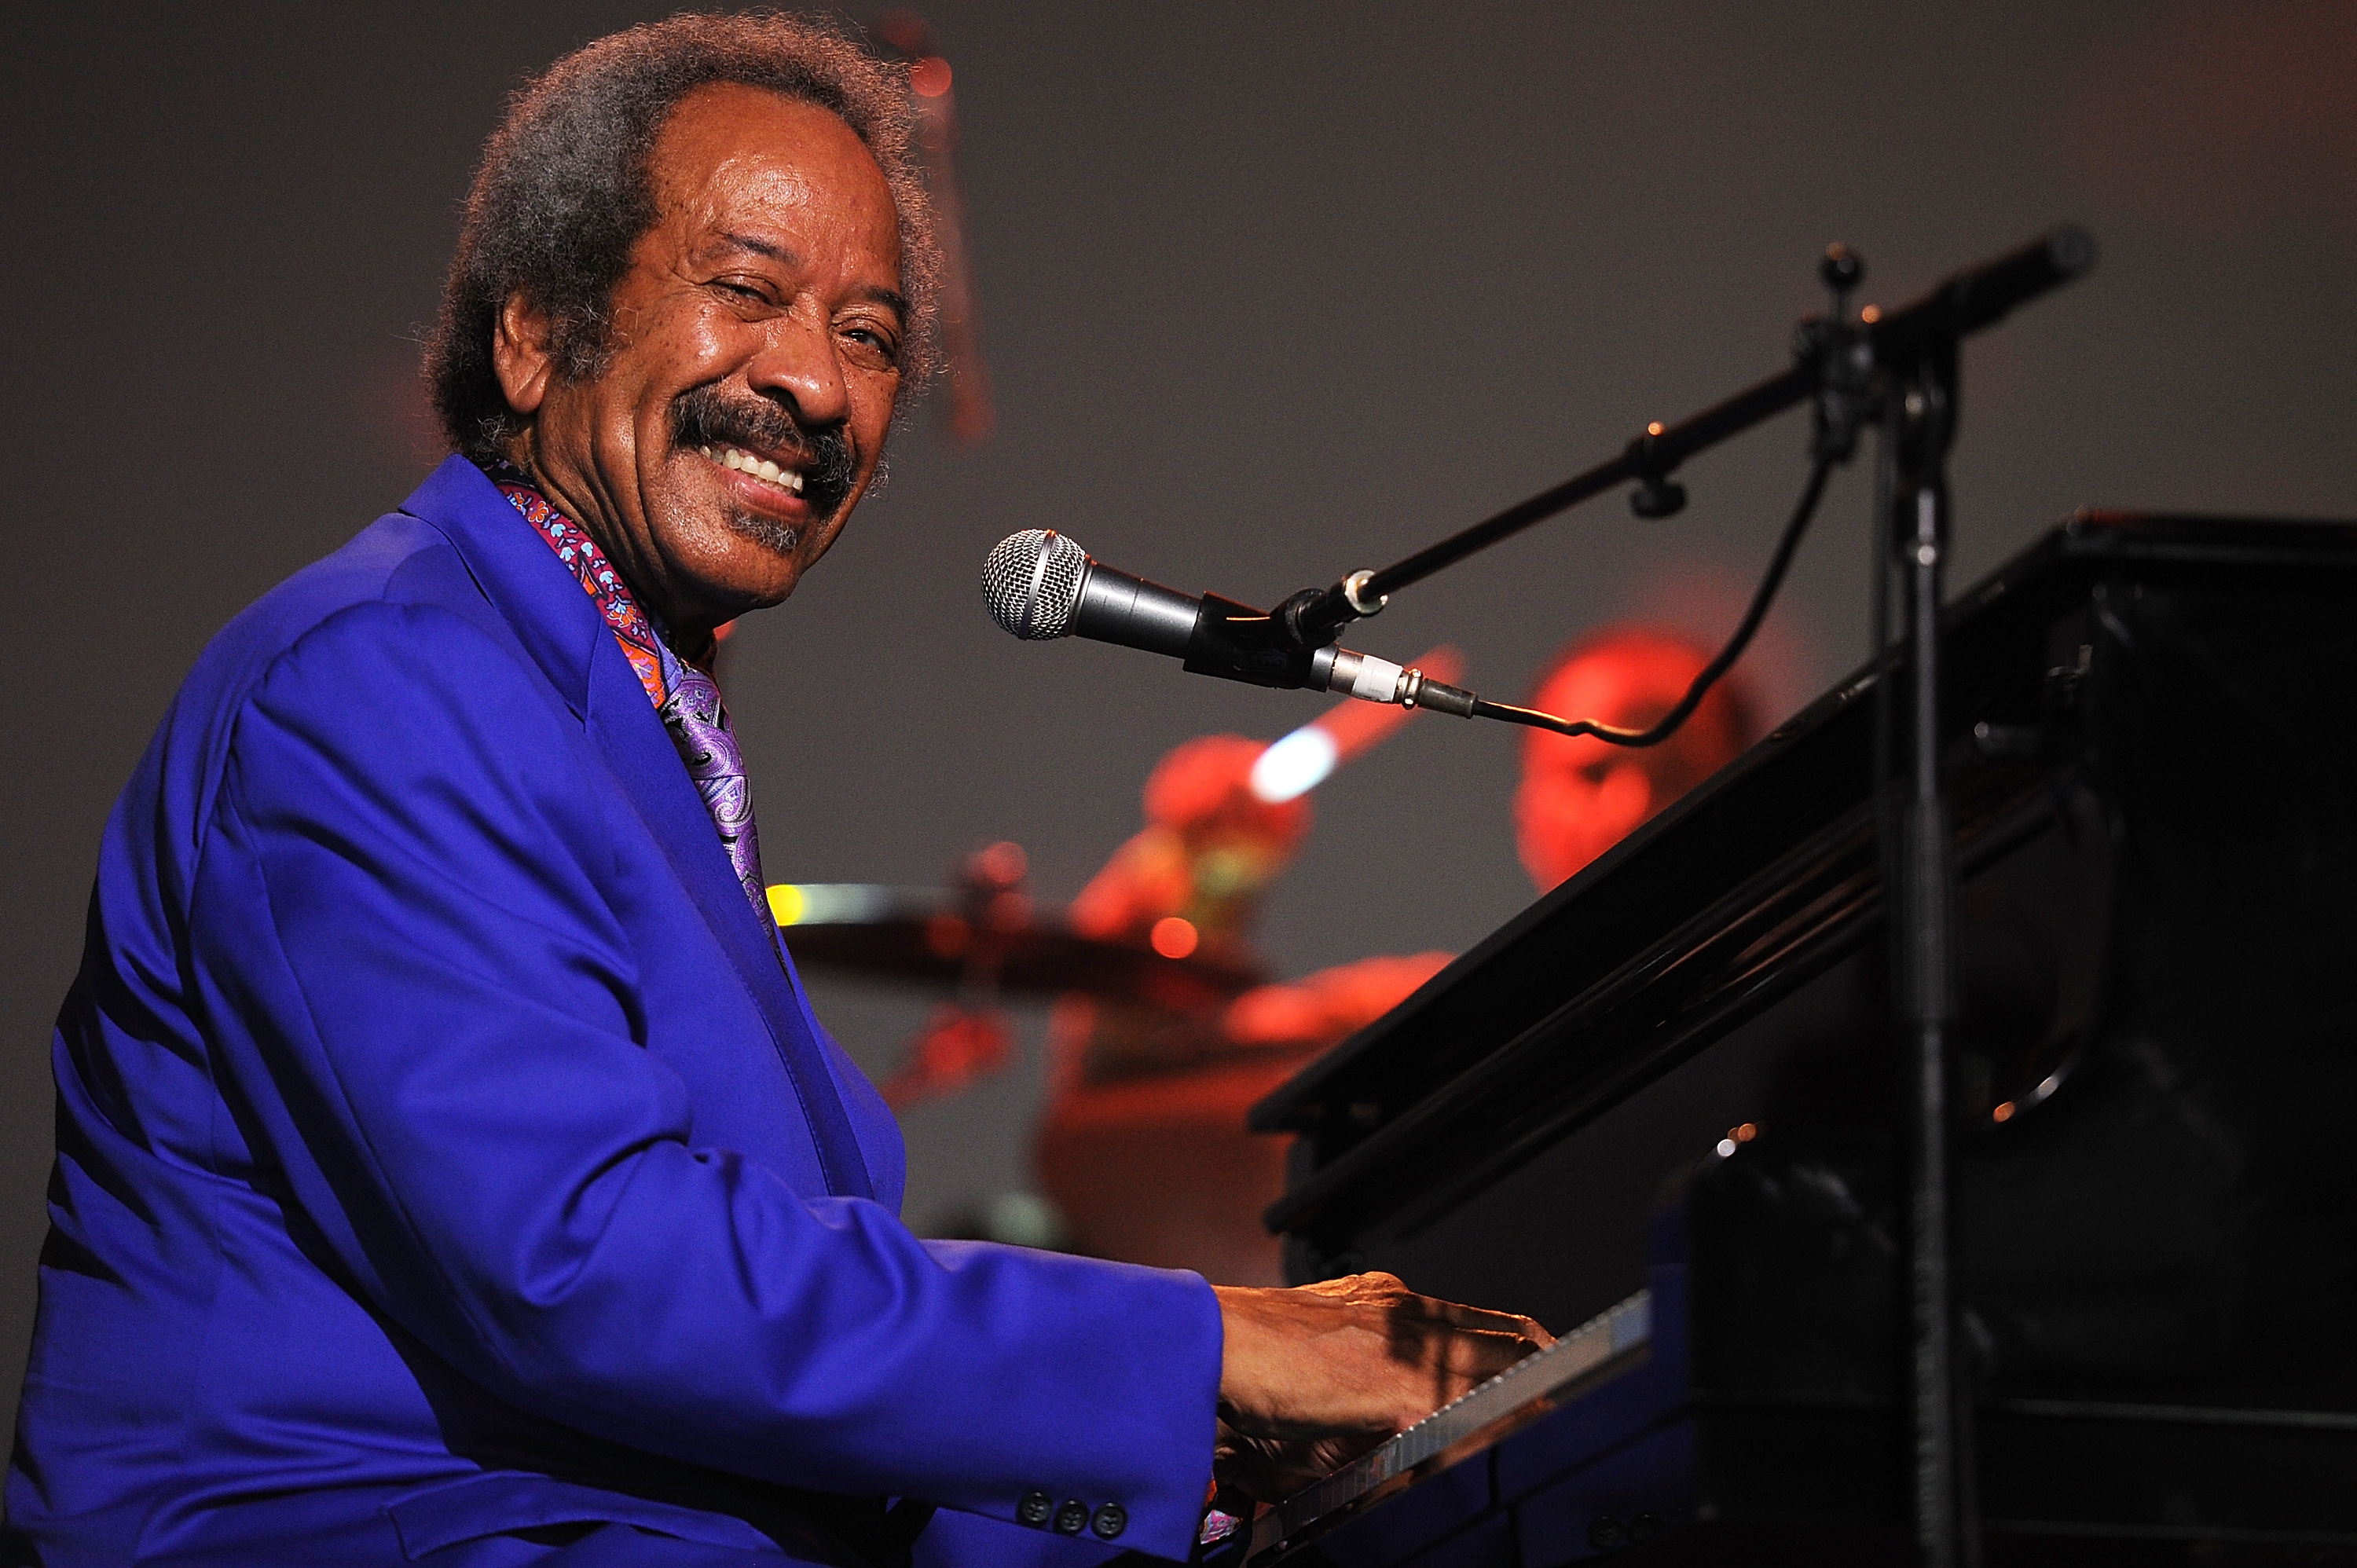 BYRON BAY, AUSTRALIA - MARCH 31:  Allen Toussaint performs on stage at Bluesfest 2013 - Day 4 on March 31, 2013 in Byron Bay, Australia.  (Photo by Matt Roberts/Getty Images)